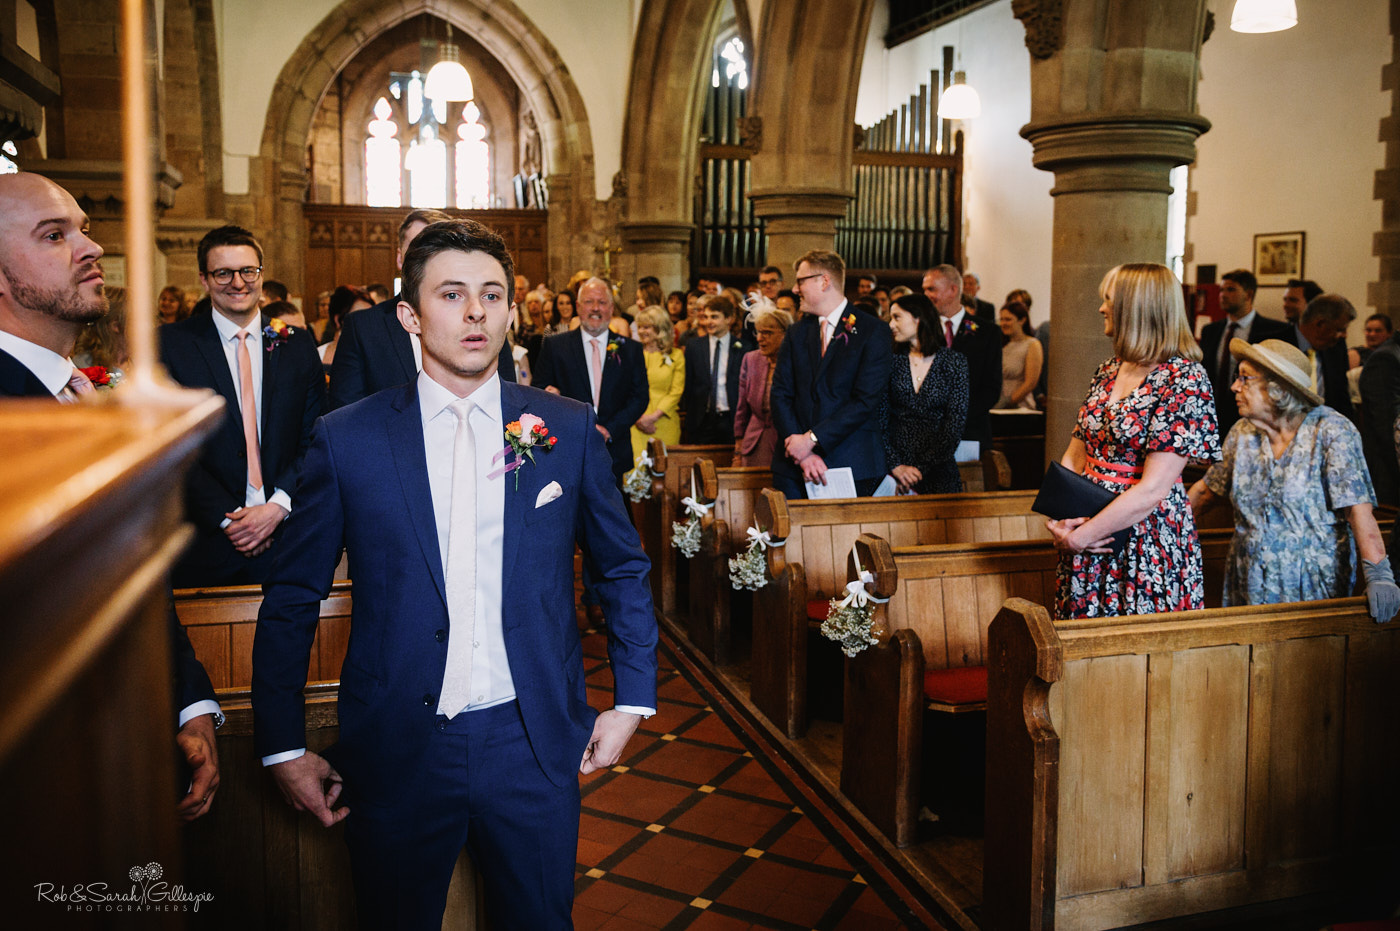 Groom waits nervously for bride at altar in church